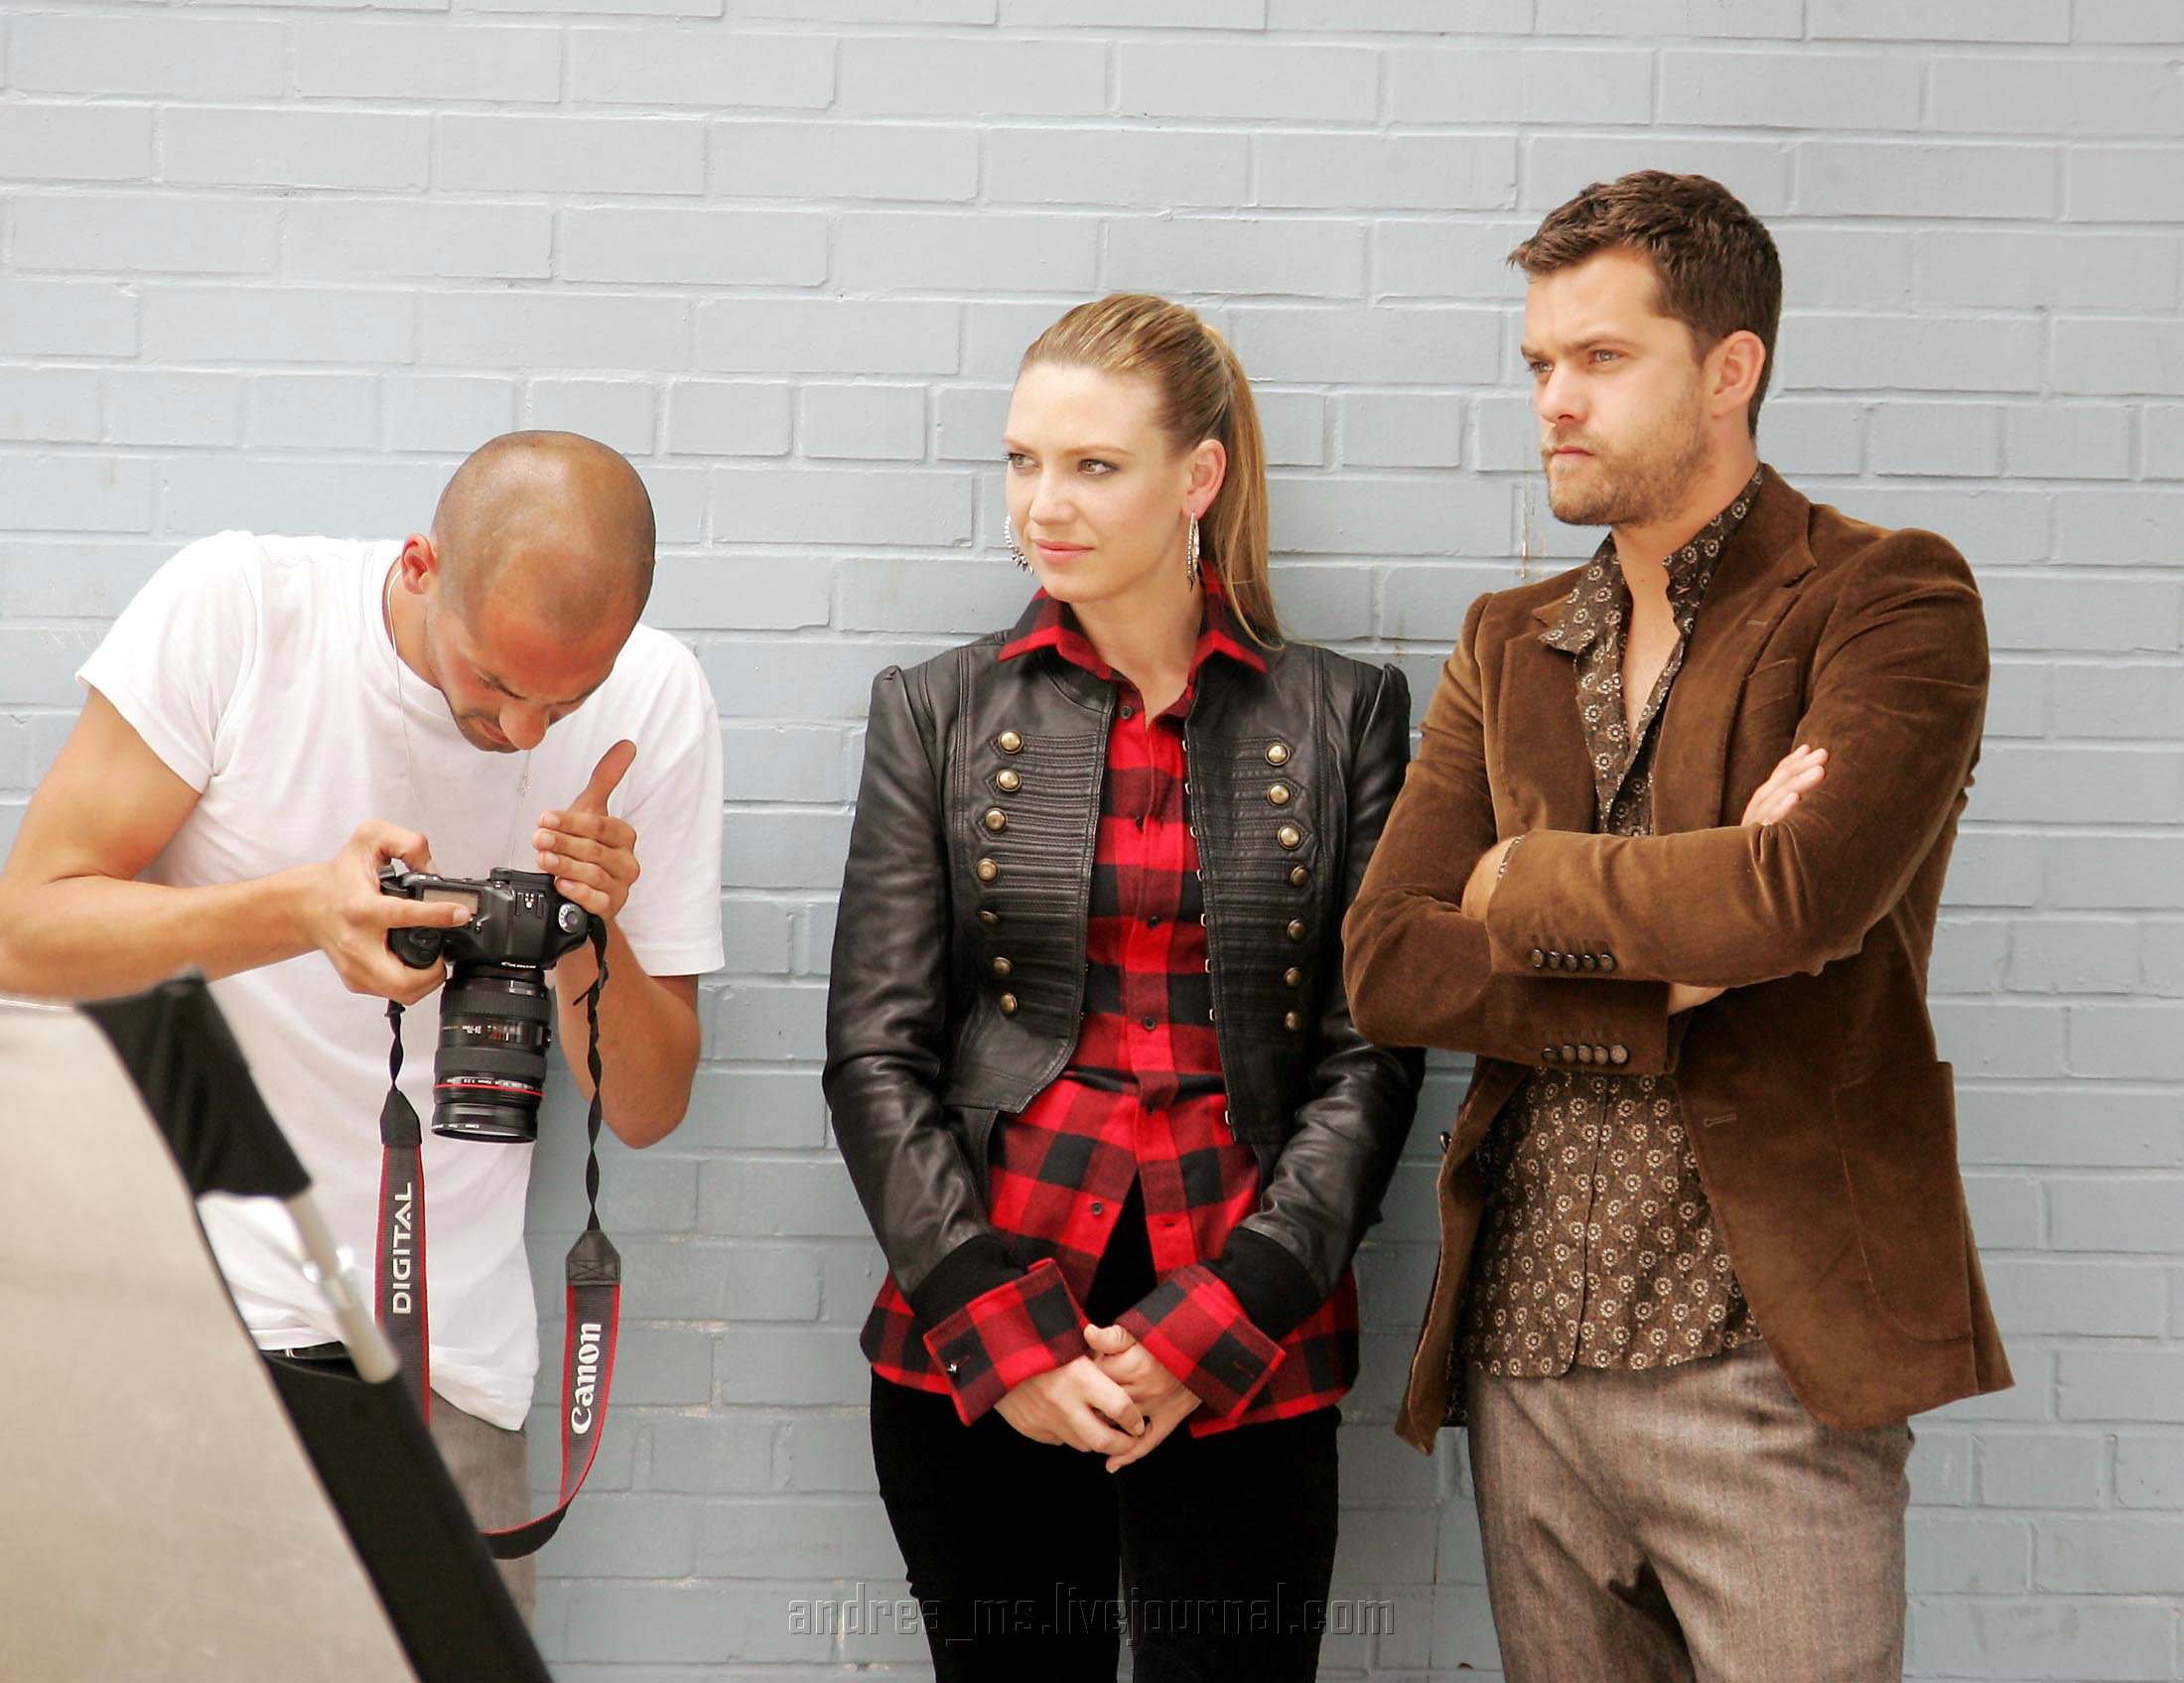 Anna Torv and Joshua Jackson Nylon photoshoot- 2008